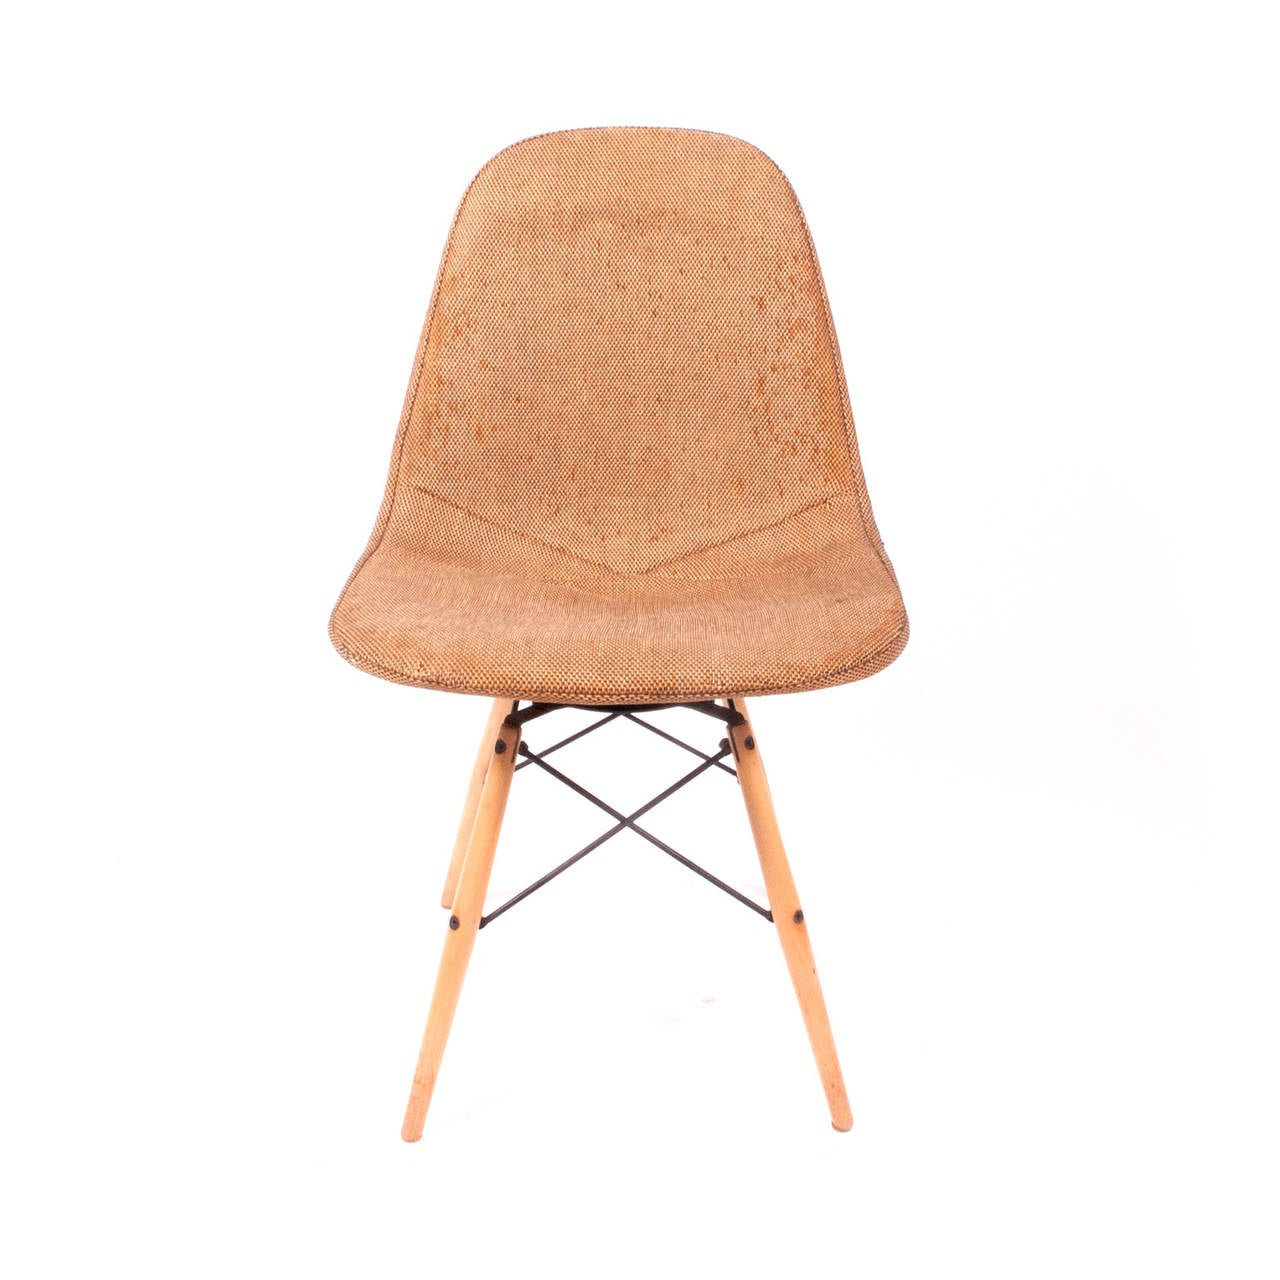 original pkw charles eames dowel leg swivel chair for sale